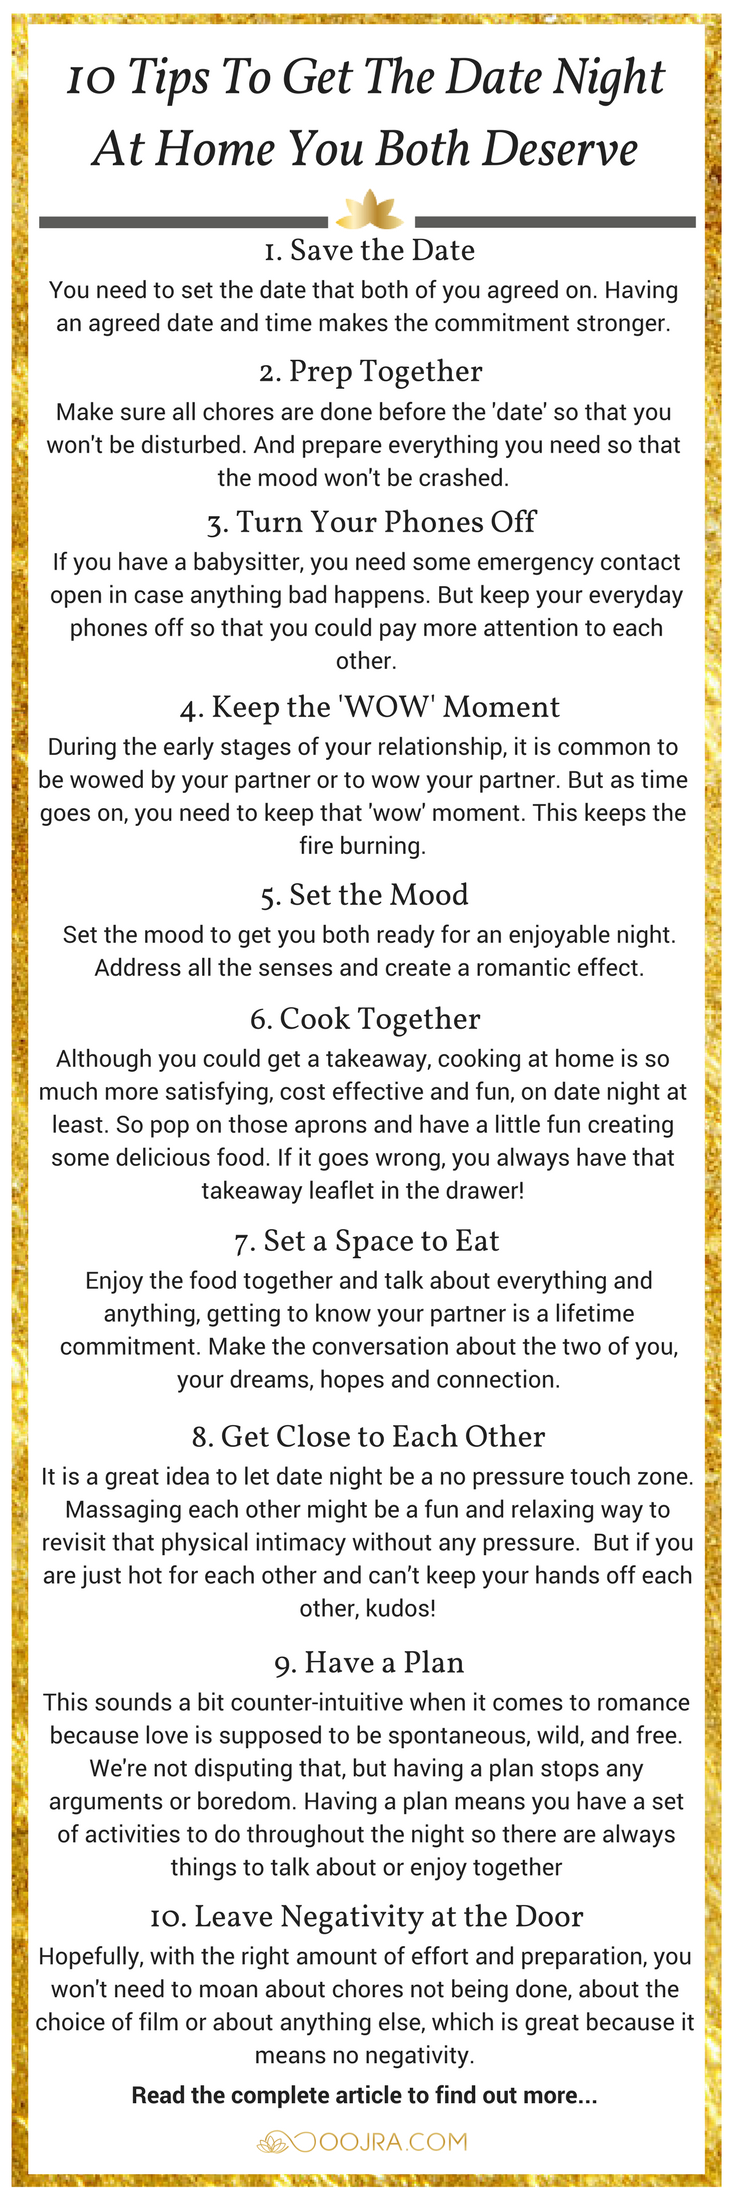 How To Get The Date Night At Home You Both Deserve - Oojra